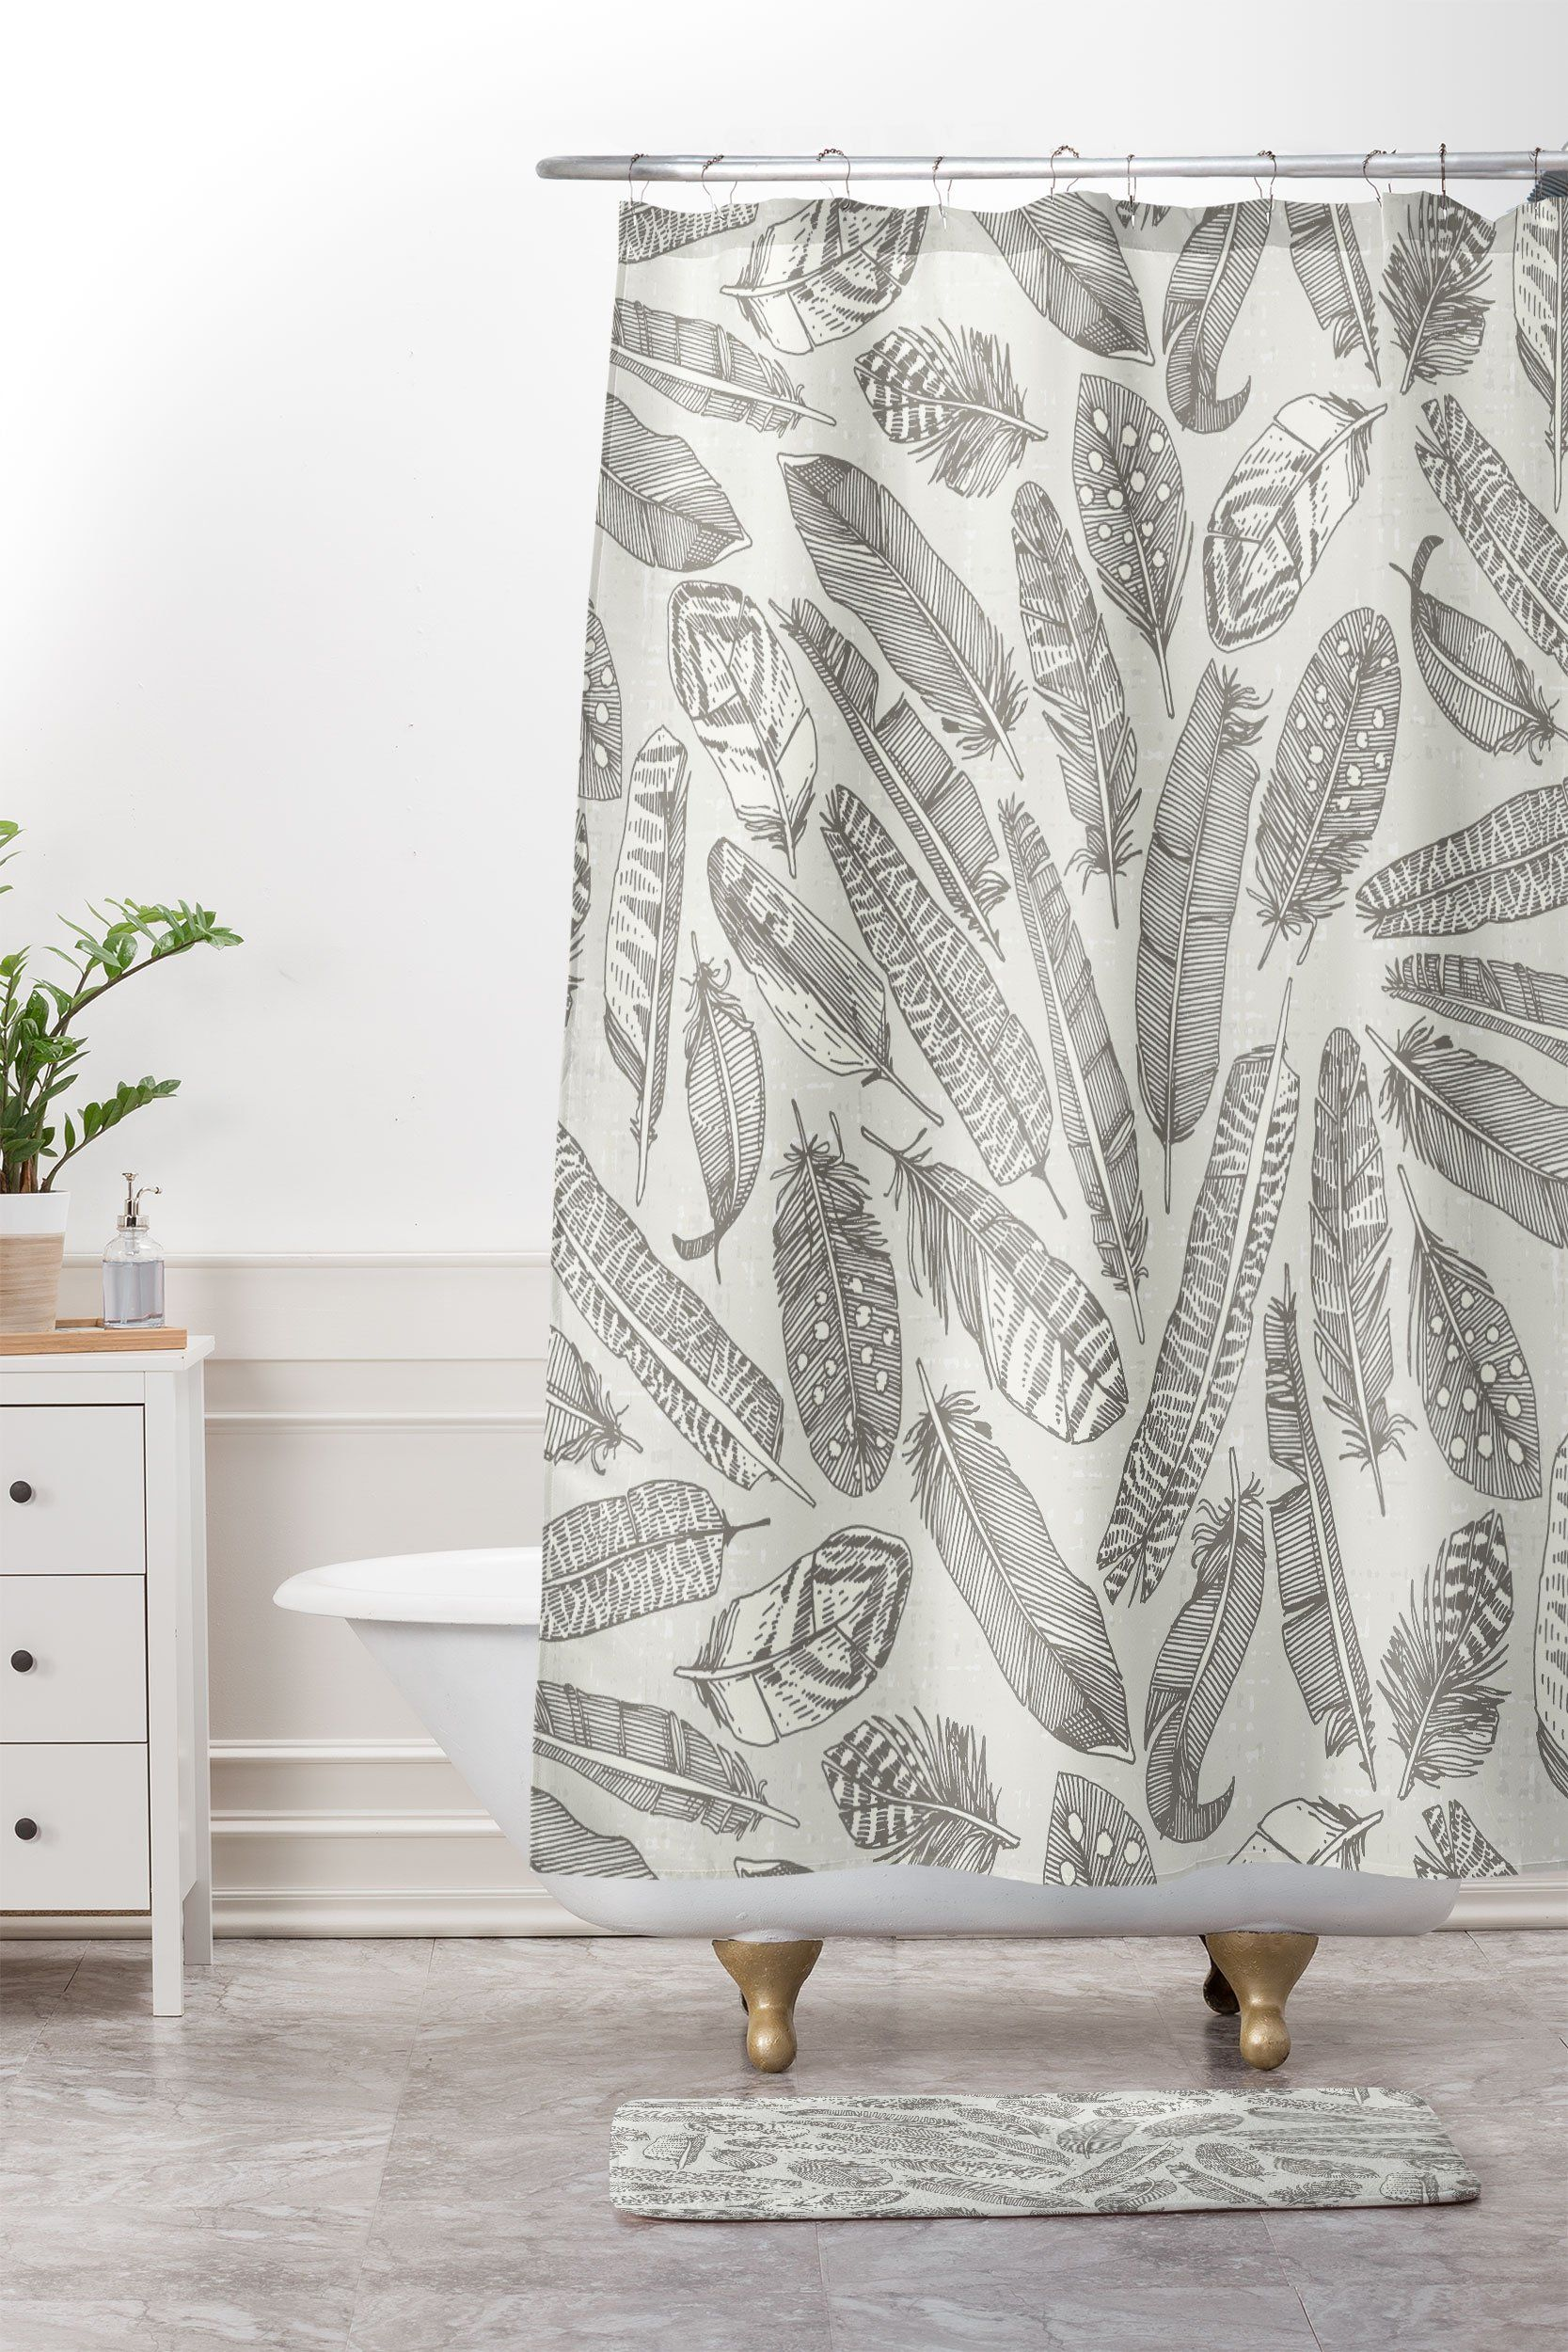 Scattered Feathers Natural Shower Curtain And Mat Sharon Turner Feathers Denydesigns Sharonturner Nature Illustration Decor Bathroom Sh Curtains Natural Showers Interior